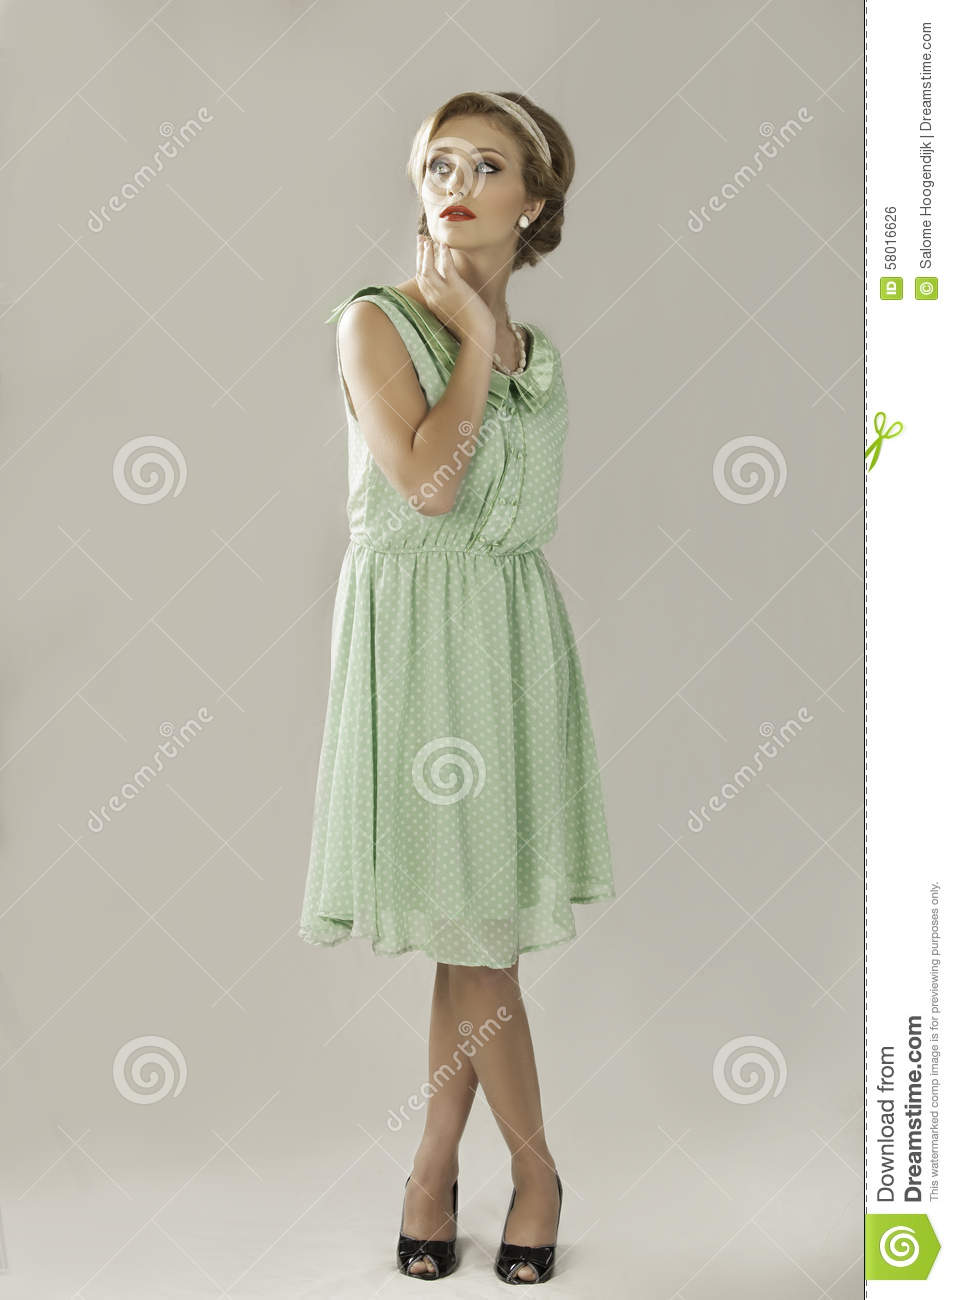 Fifties woman in green dress